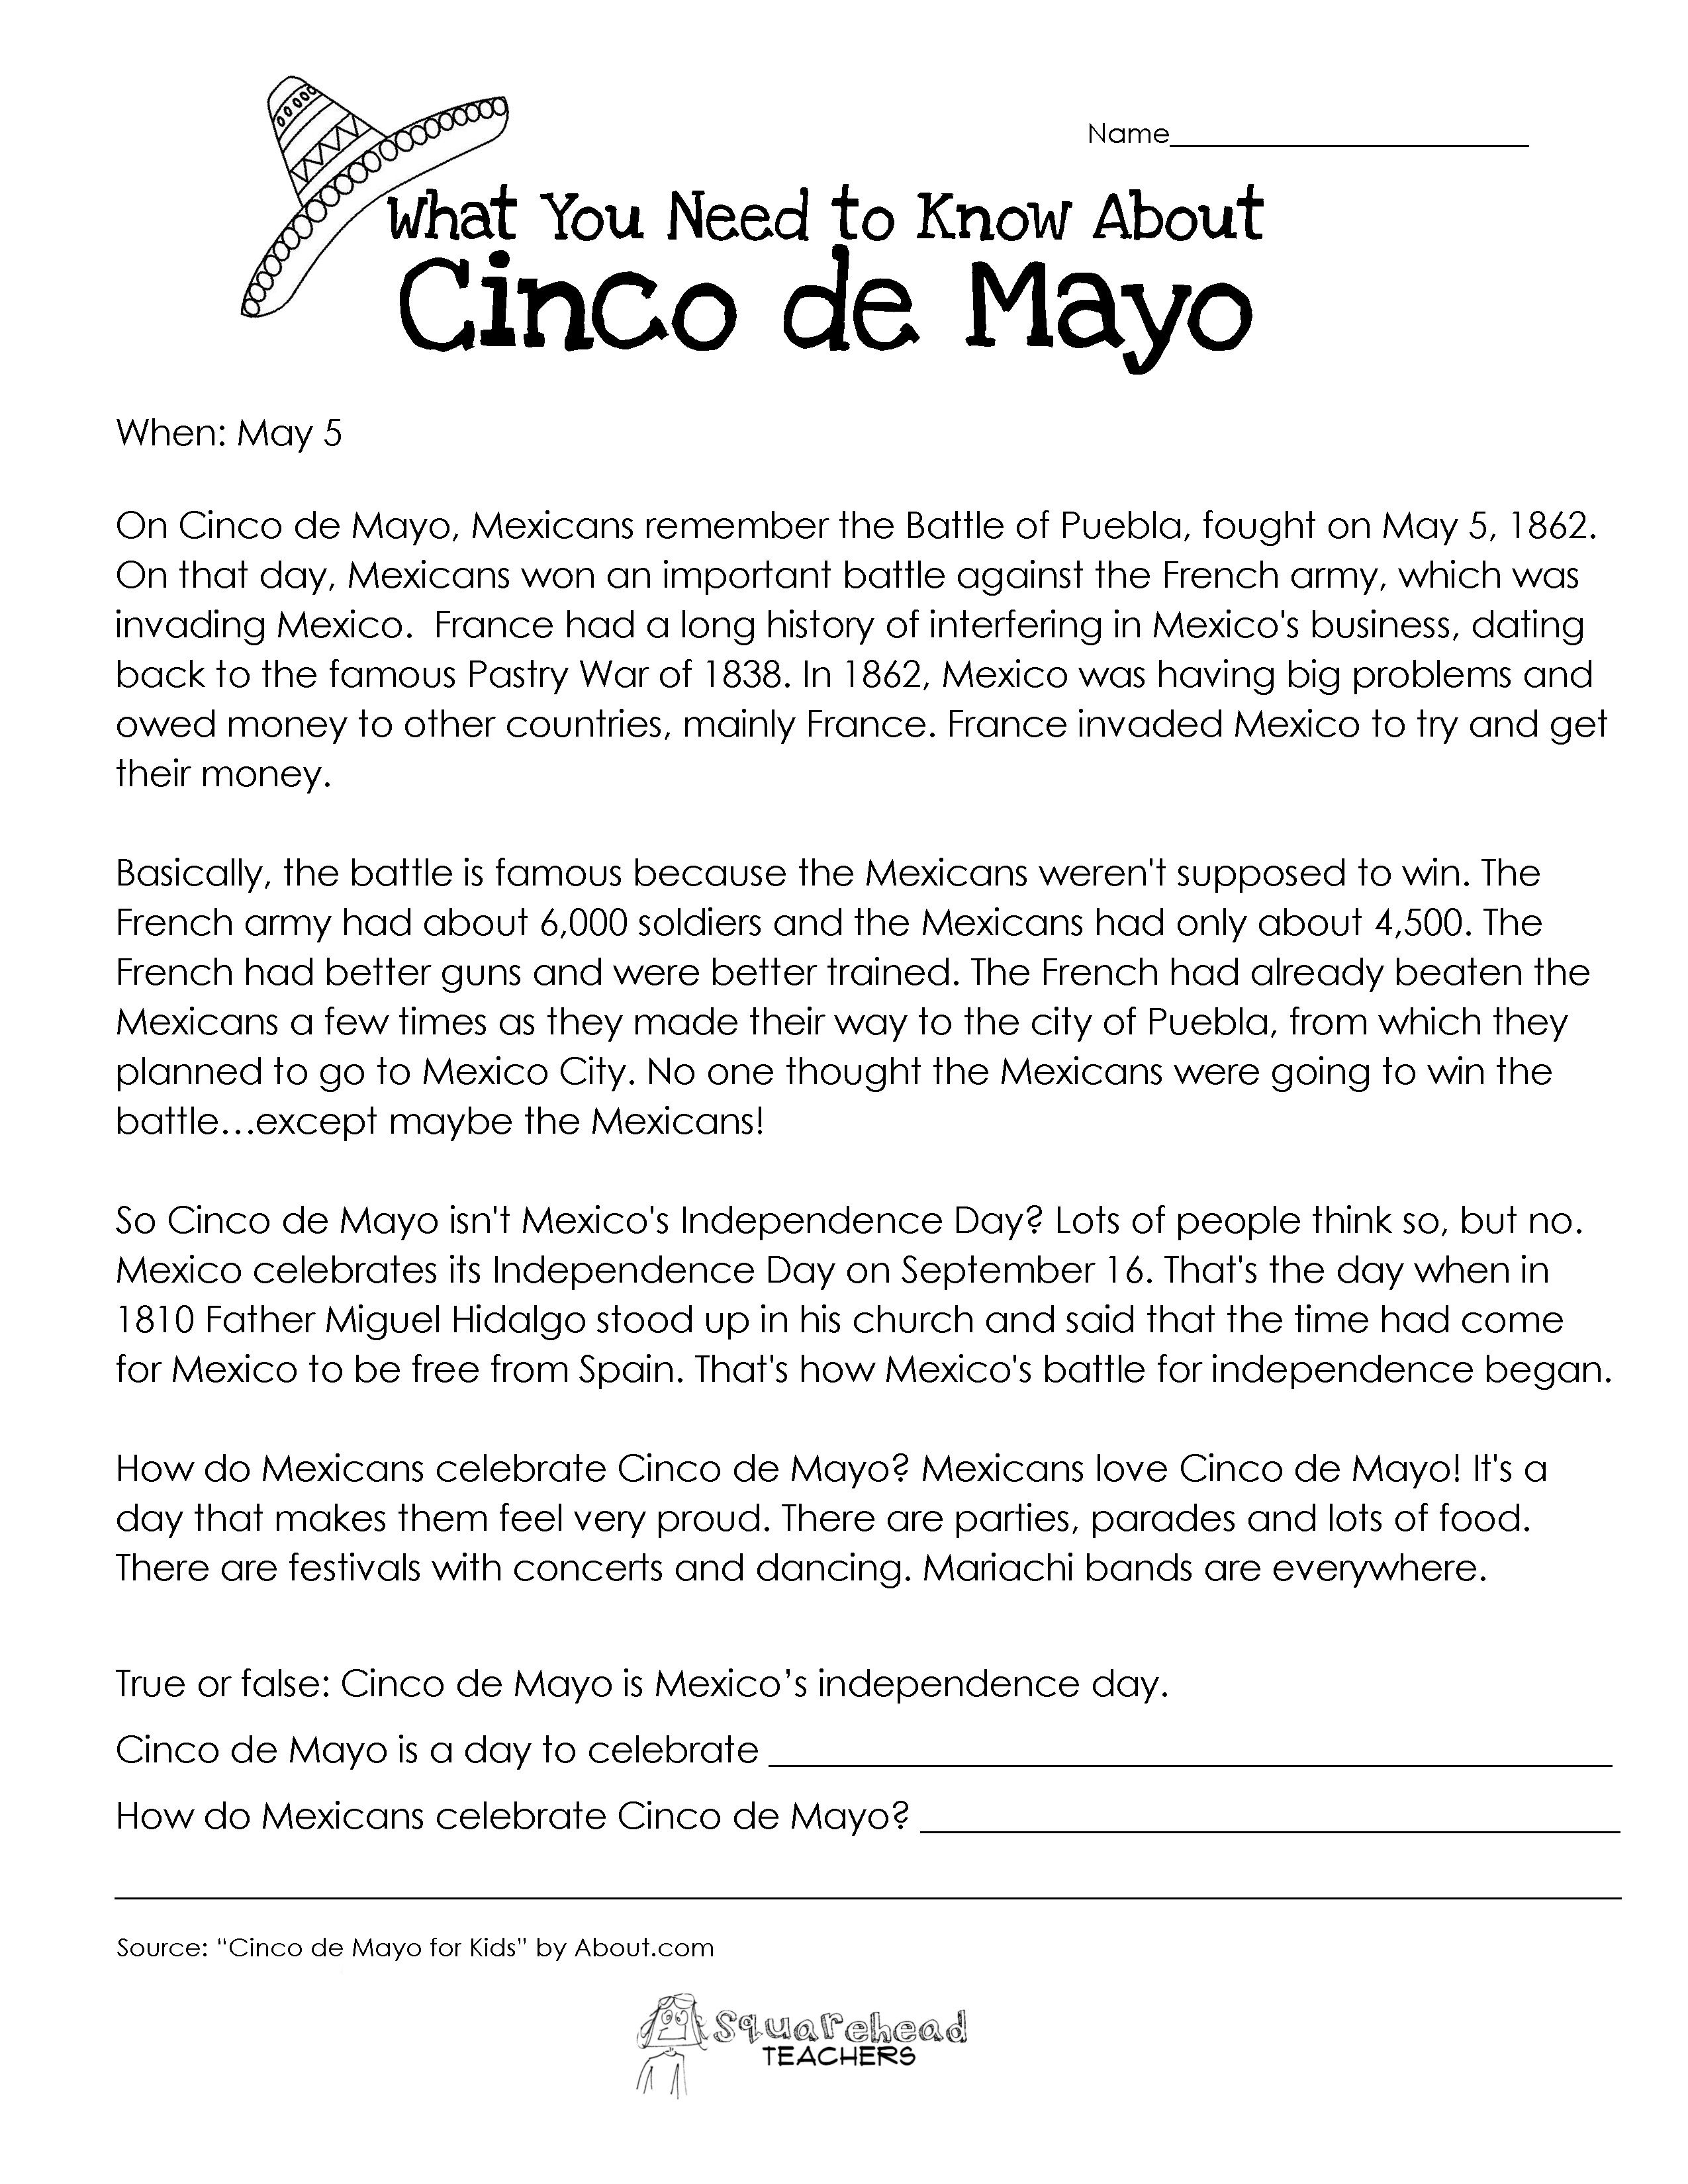 Cinco de mayo mexican flag coloring page - No Cinco De Mayo Isn T Mexico S Independence Day That S On September 16